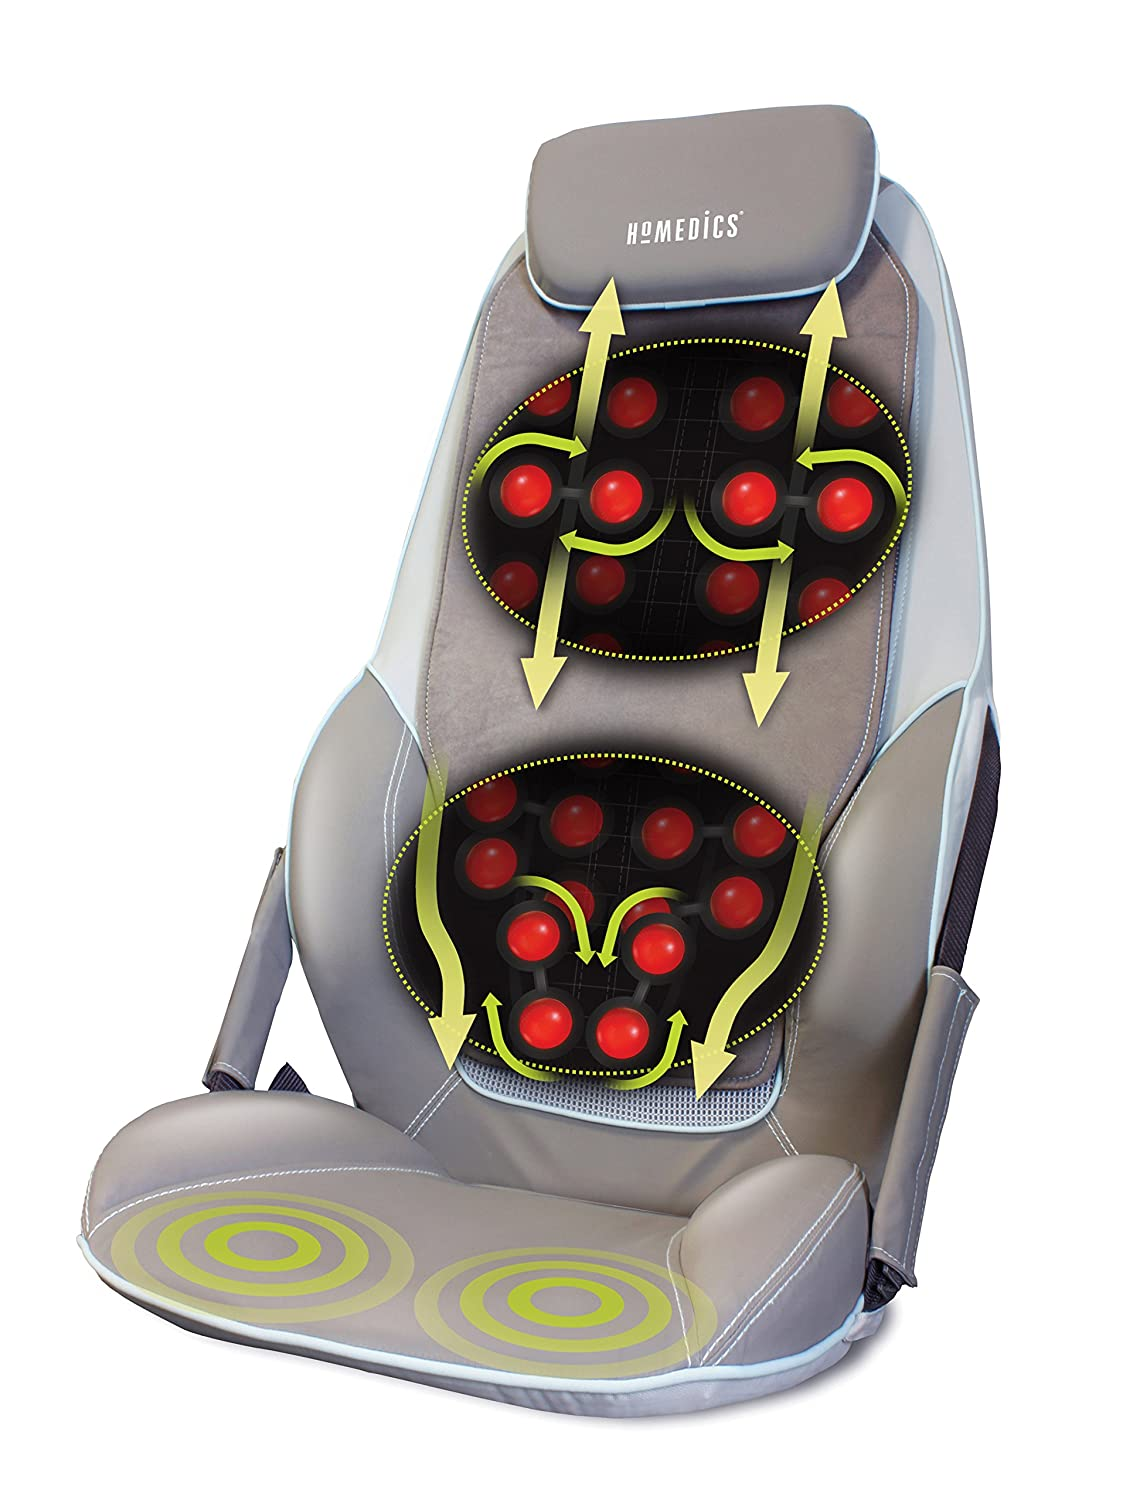 HoMedics Massagematte - HoMedics Shiatsu MAX Massagesitzauflage - Massageauflage Test